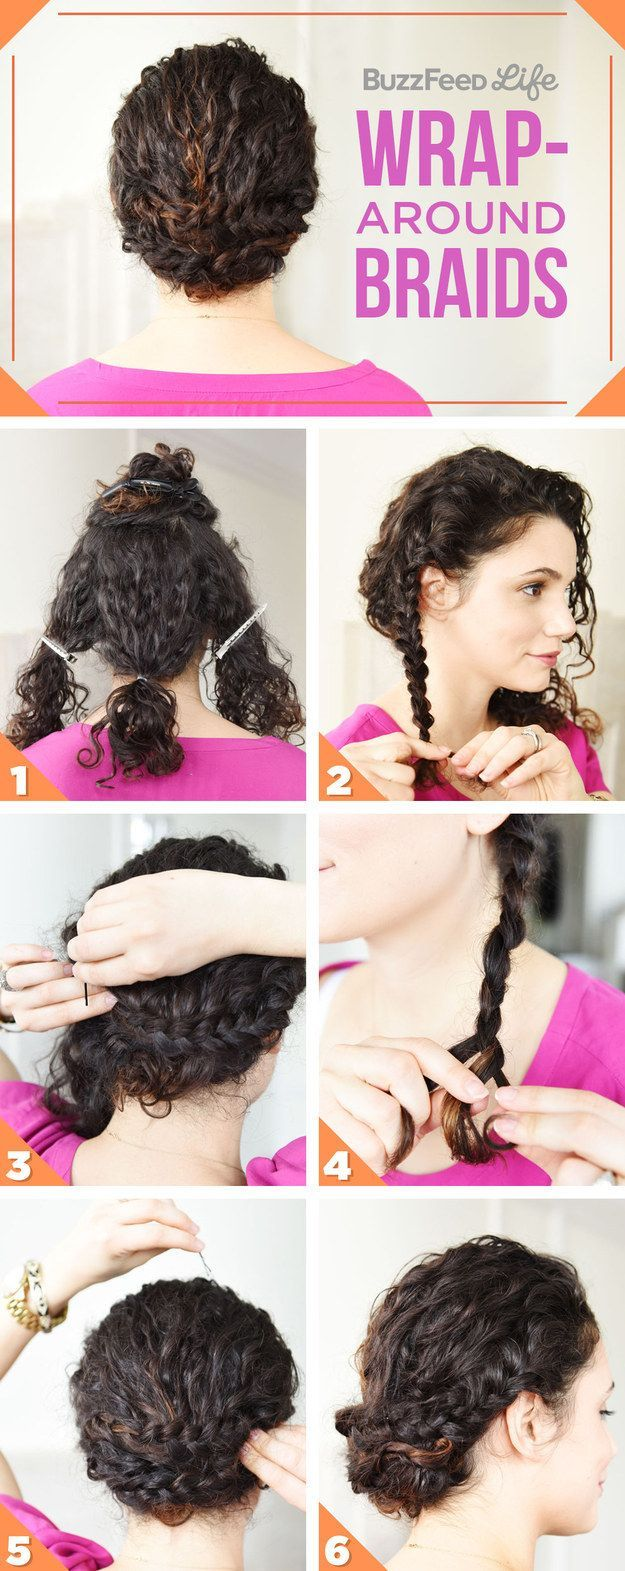 Create a wrap-around braid look with this tutorial.   17 Incredibly Pretty Styles For Naturally Curly Hair